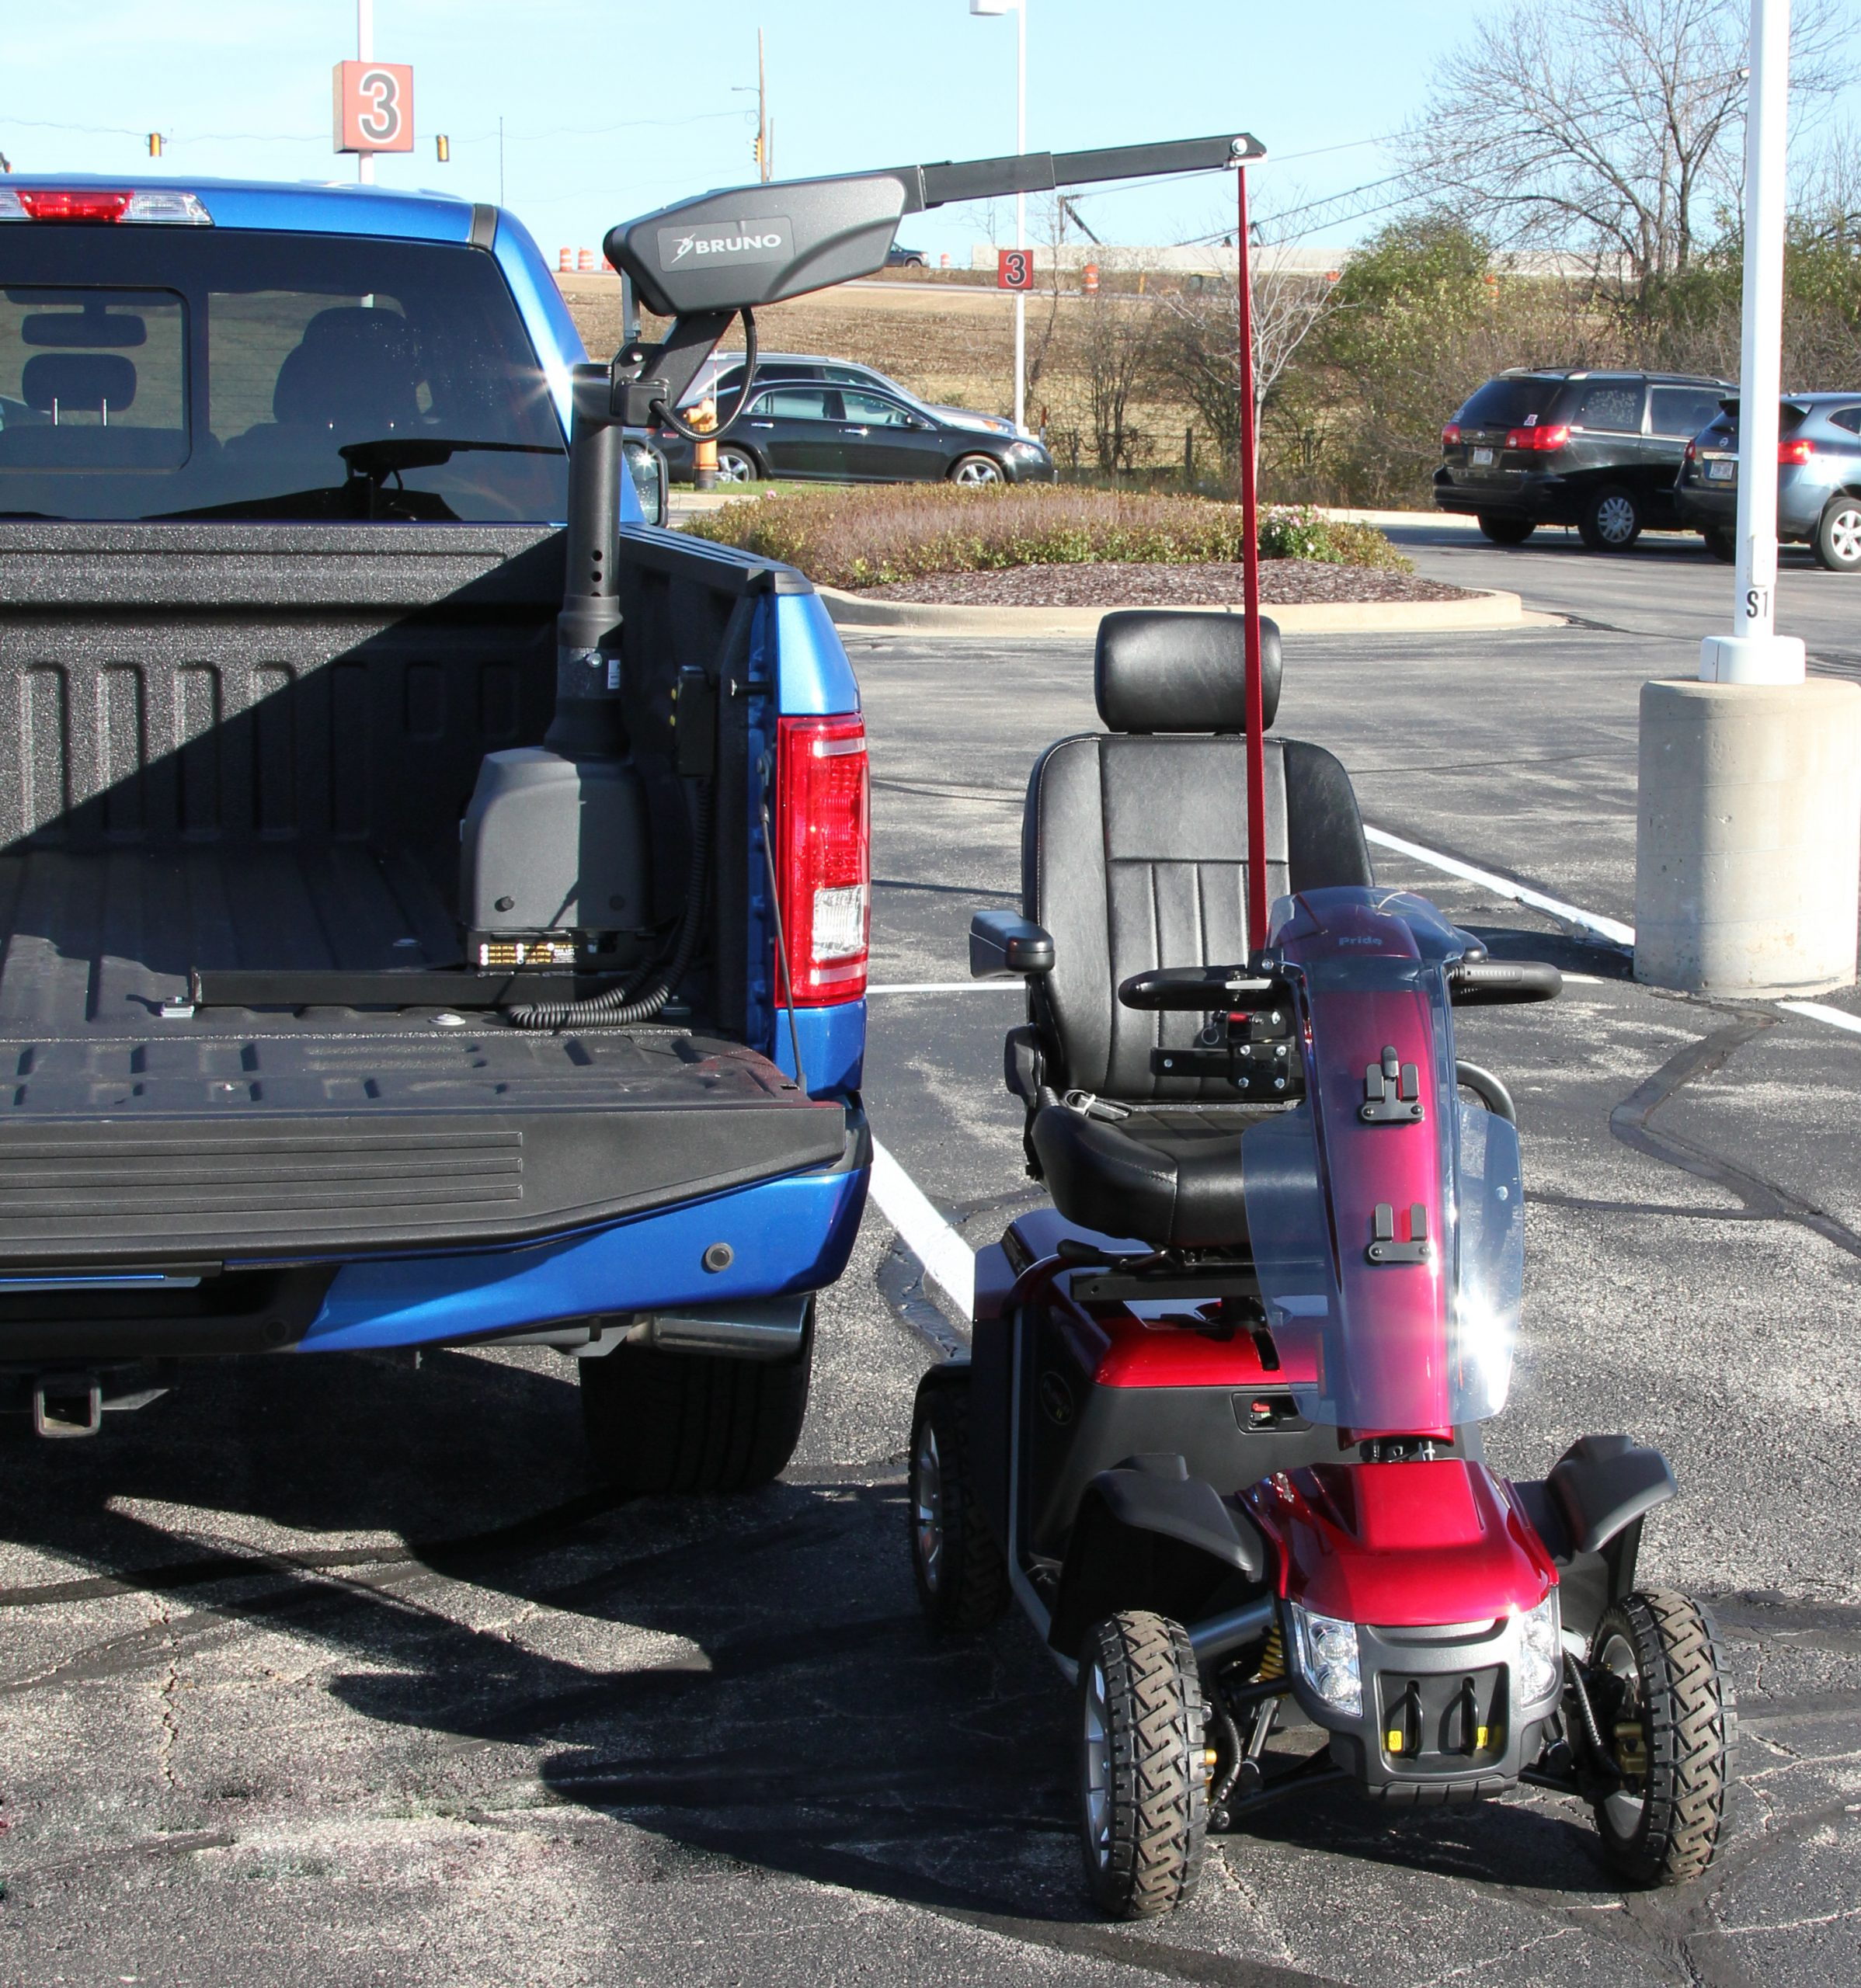 A scooter beside a truck using a curb sider